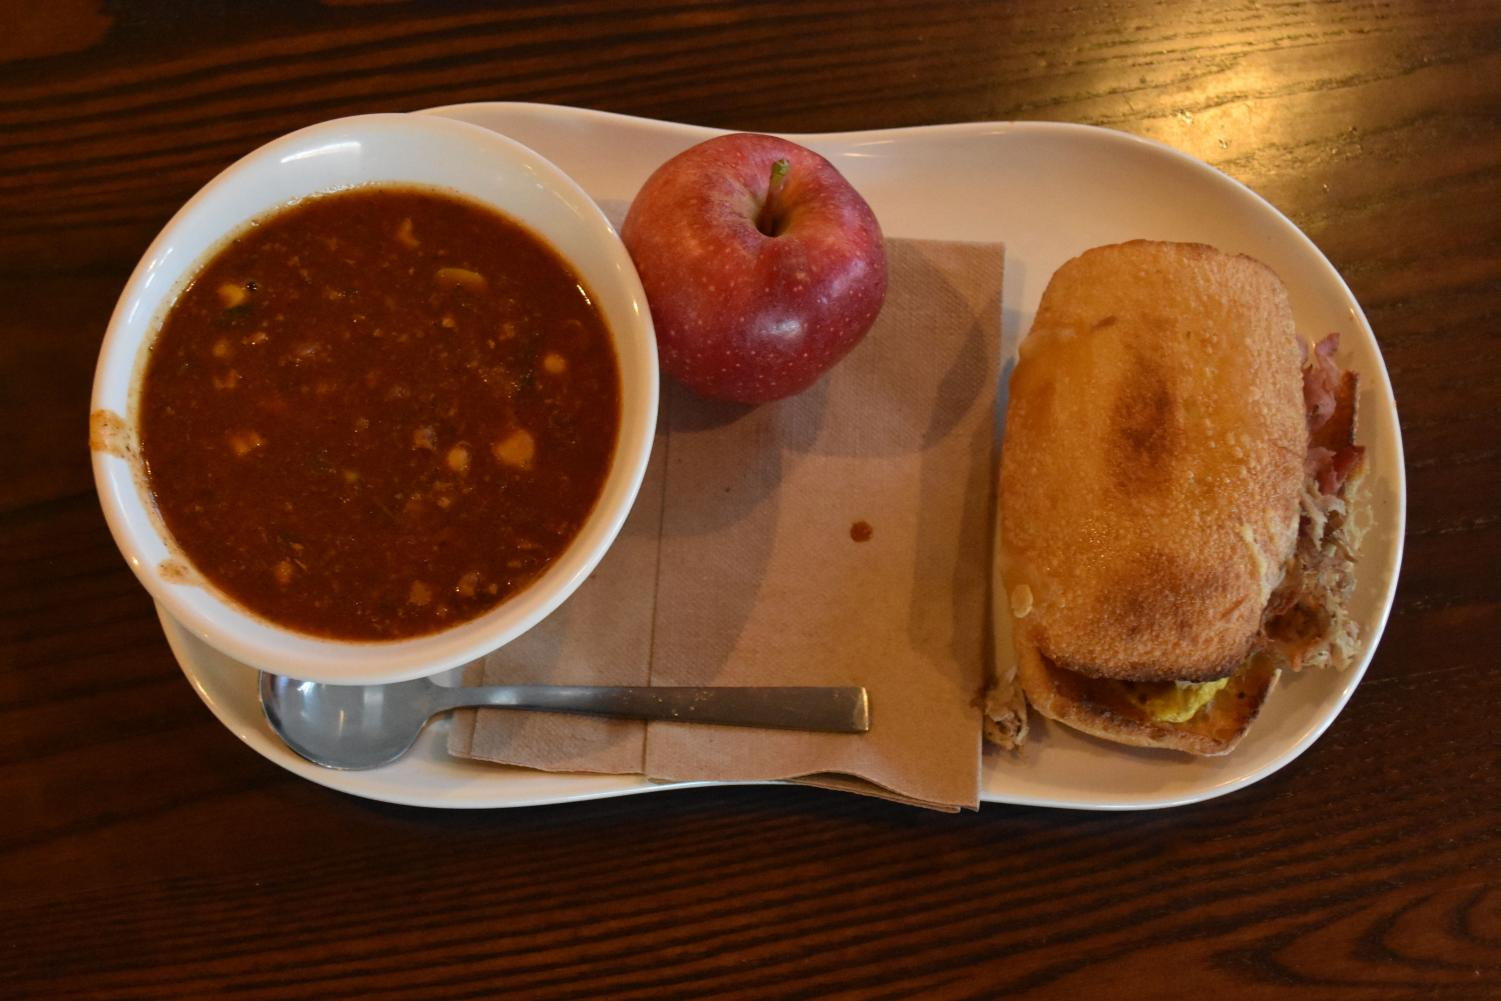 I ordered a Cuban sandwich, turkey chili soup, and an apple from the Four Seasons Shopping Center location.